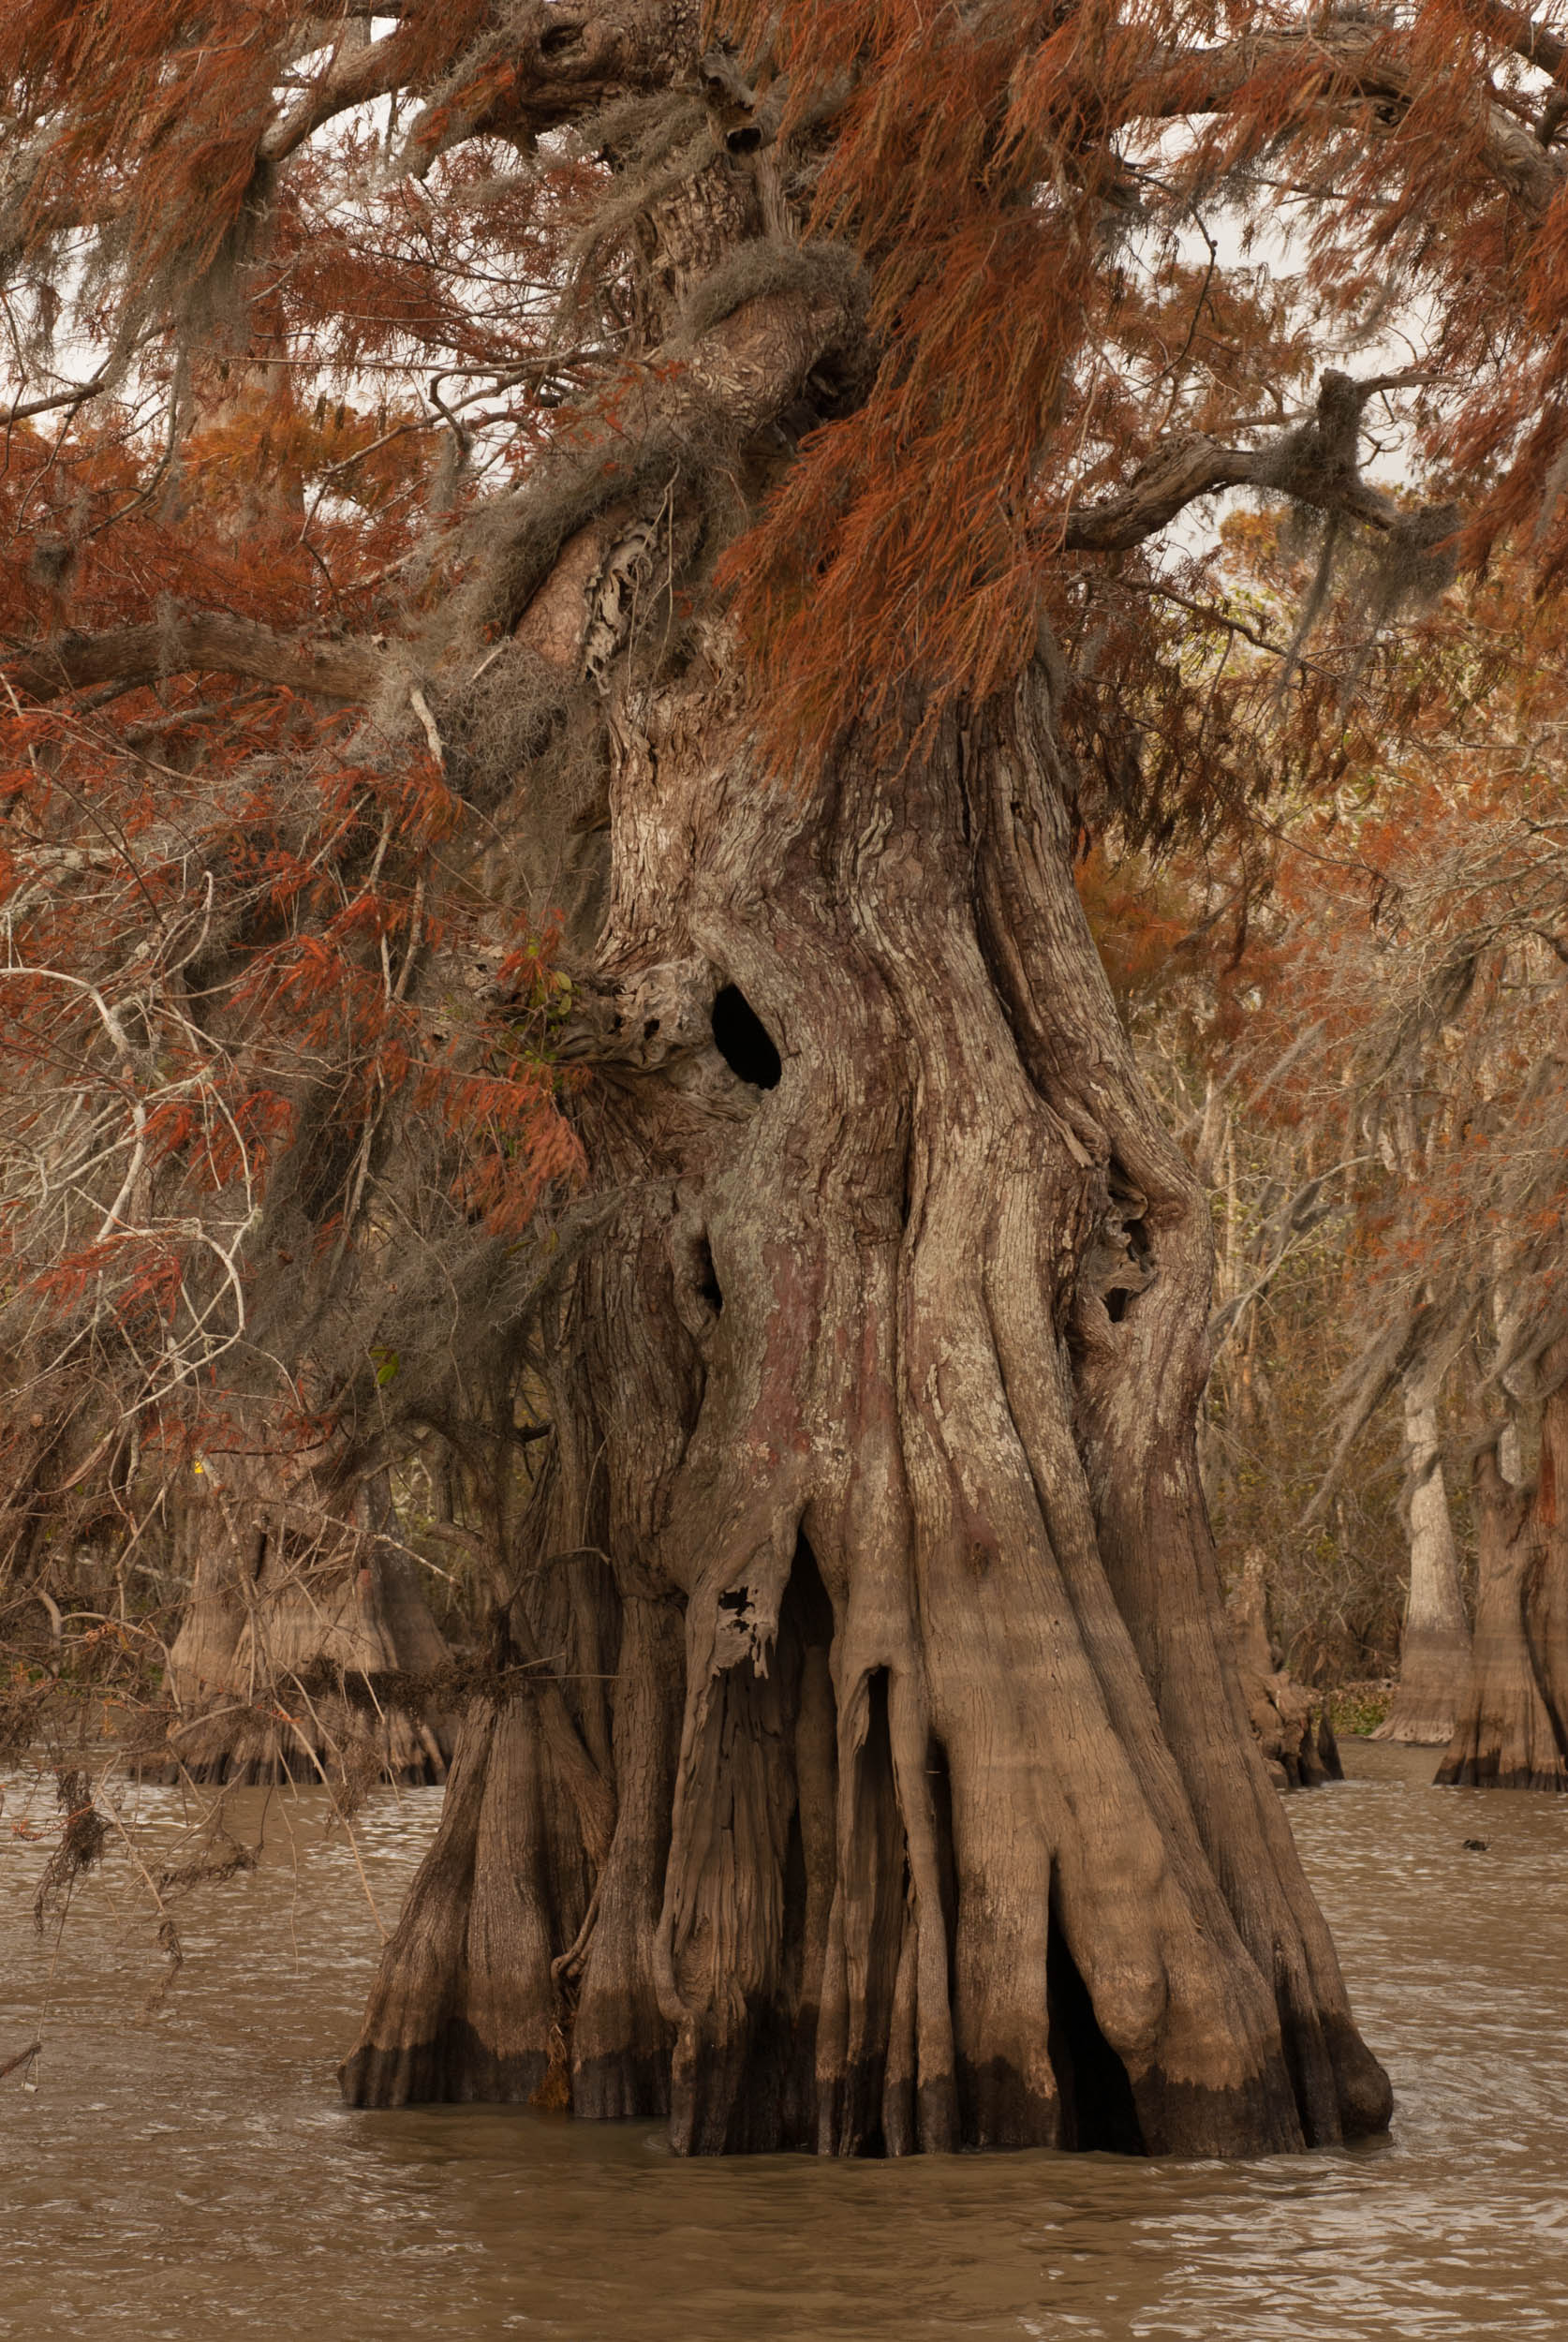 Cypress Trees – Lake Fausse Pointe, Atchafalaya Basin, Louisiana